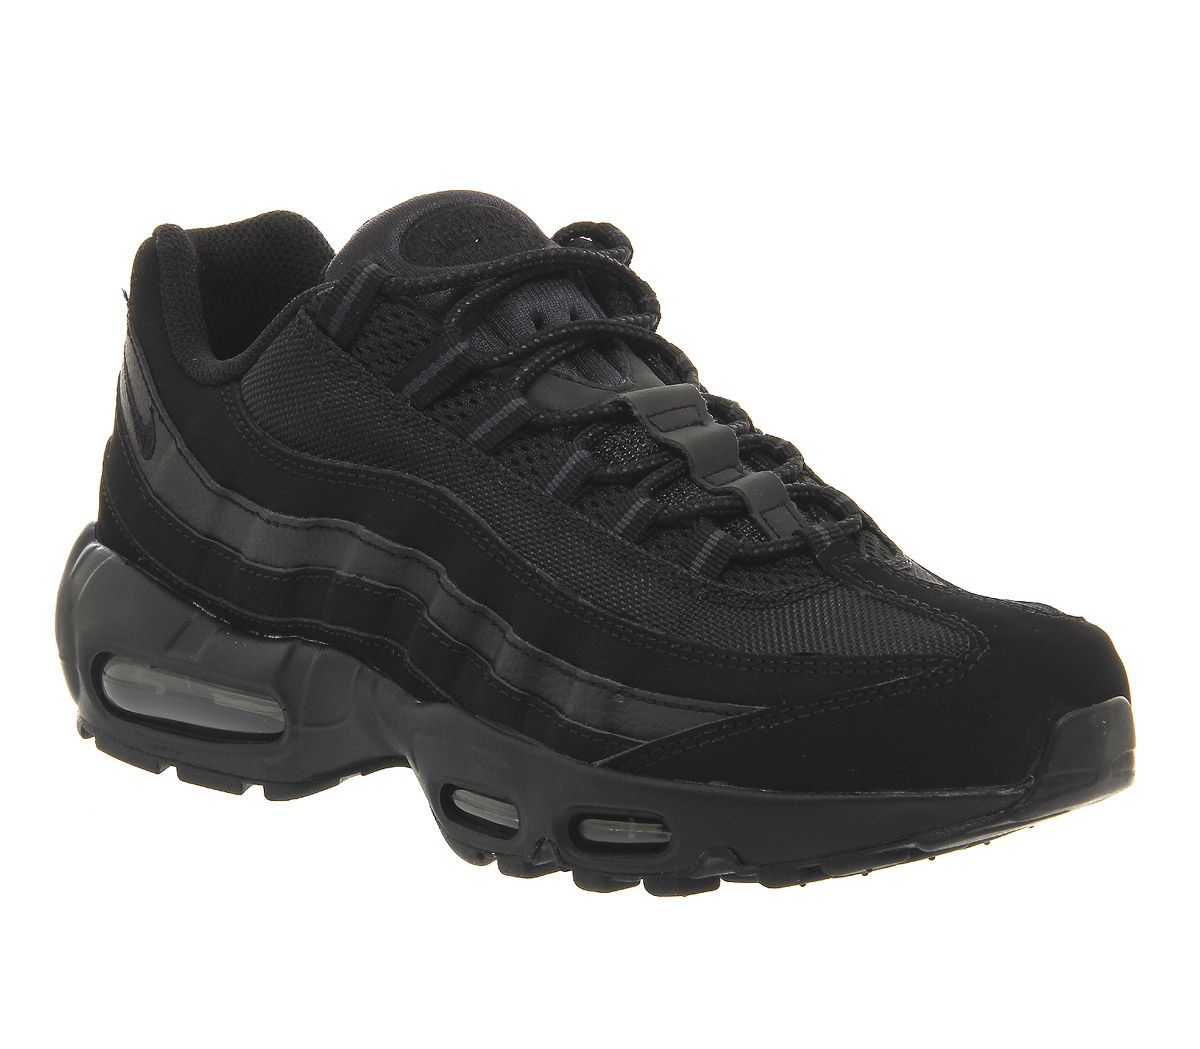 faa119b66d27 Nike Air Max 95 Black Black Anthracite - His trainers